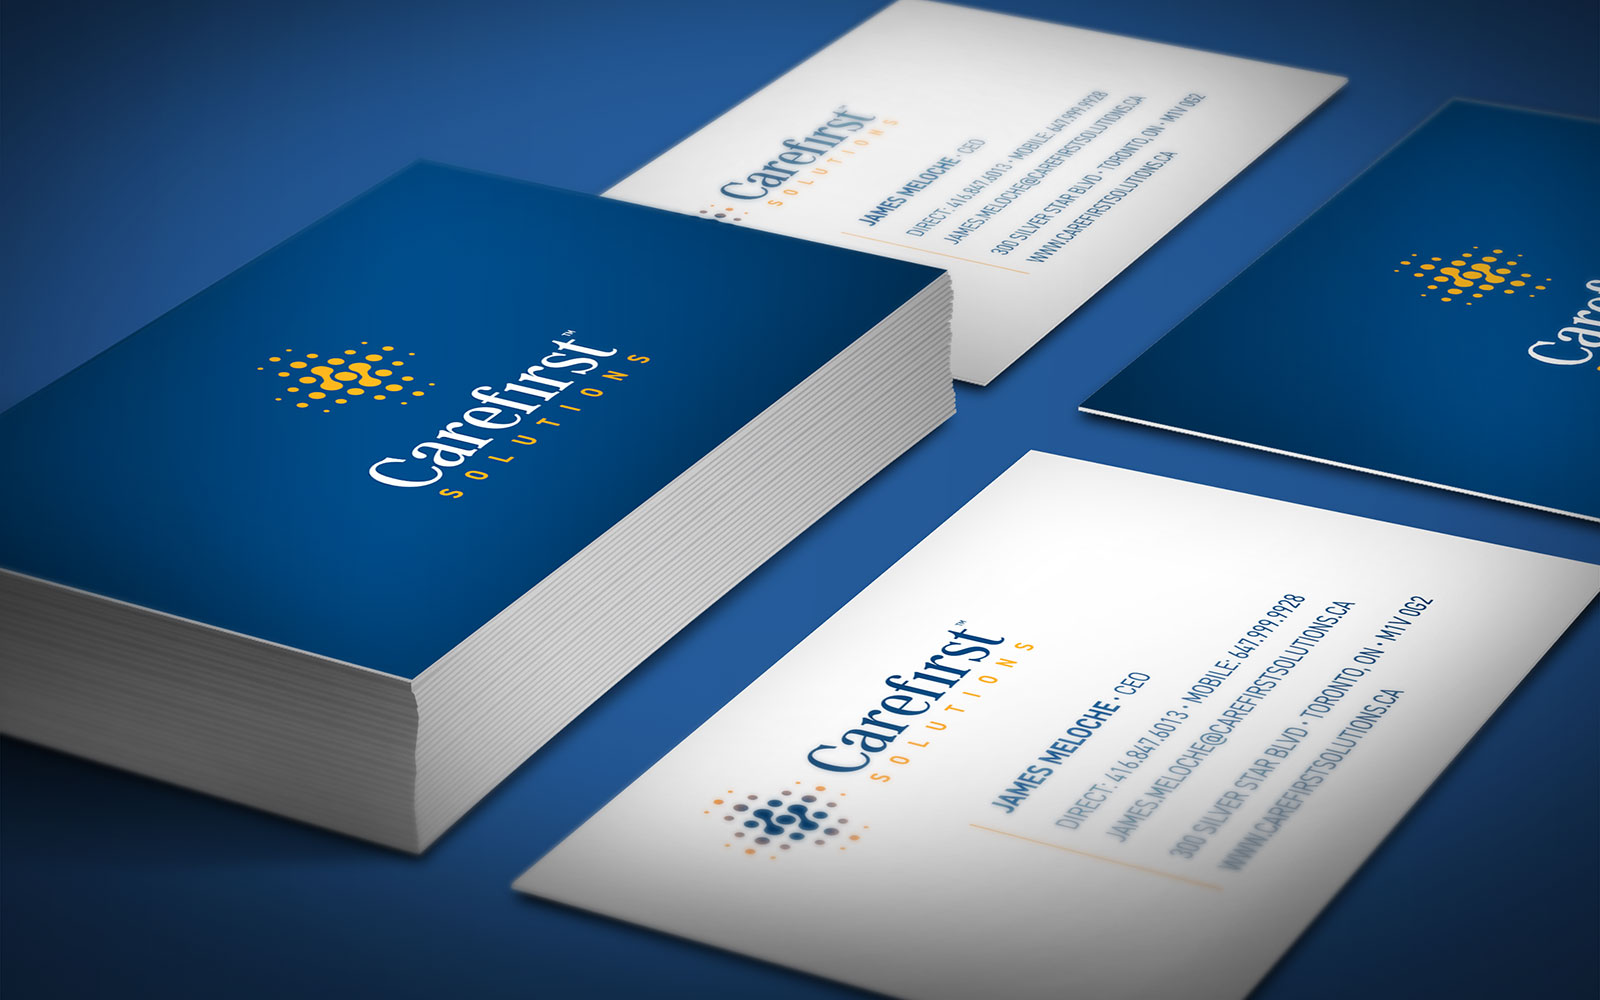 Carefirst Solutions - Business Card Design